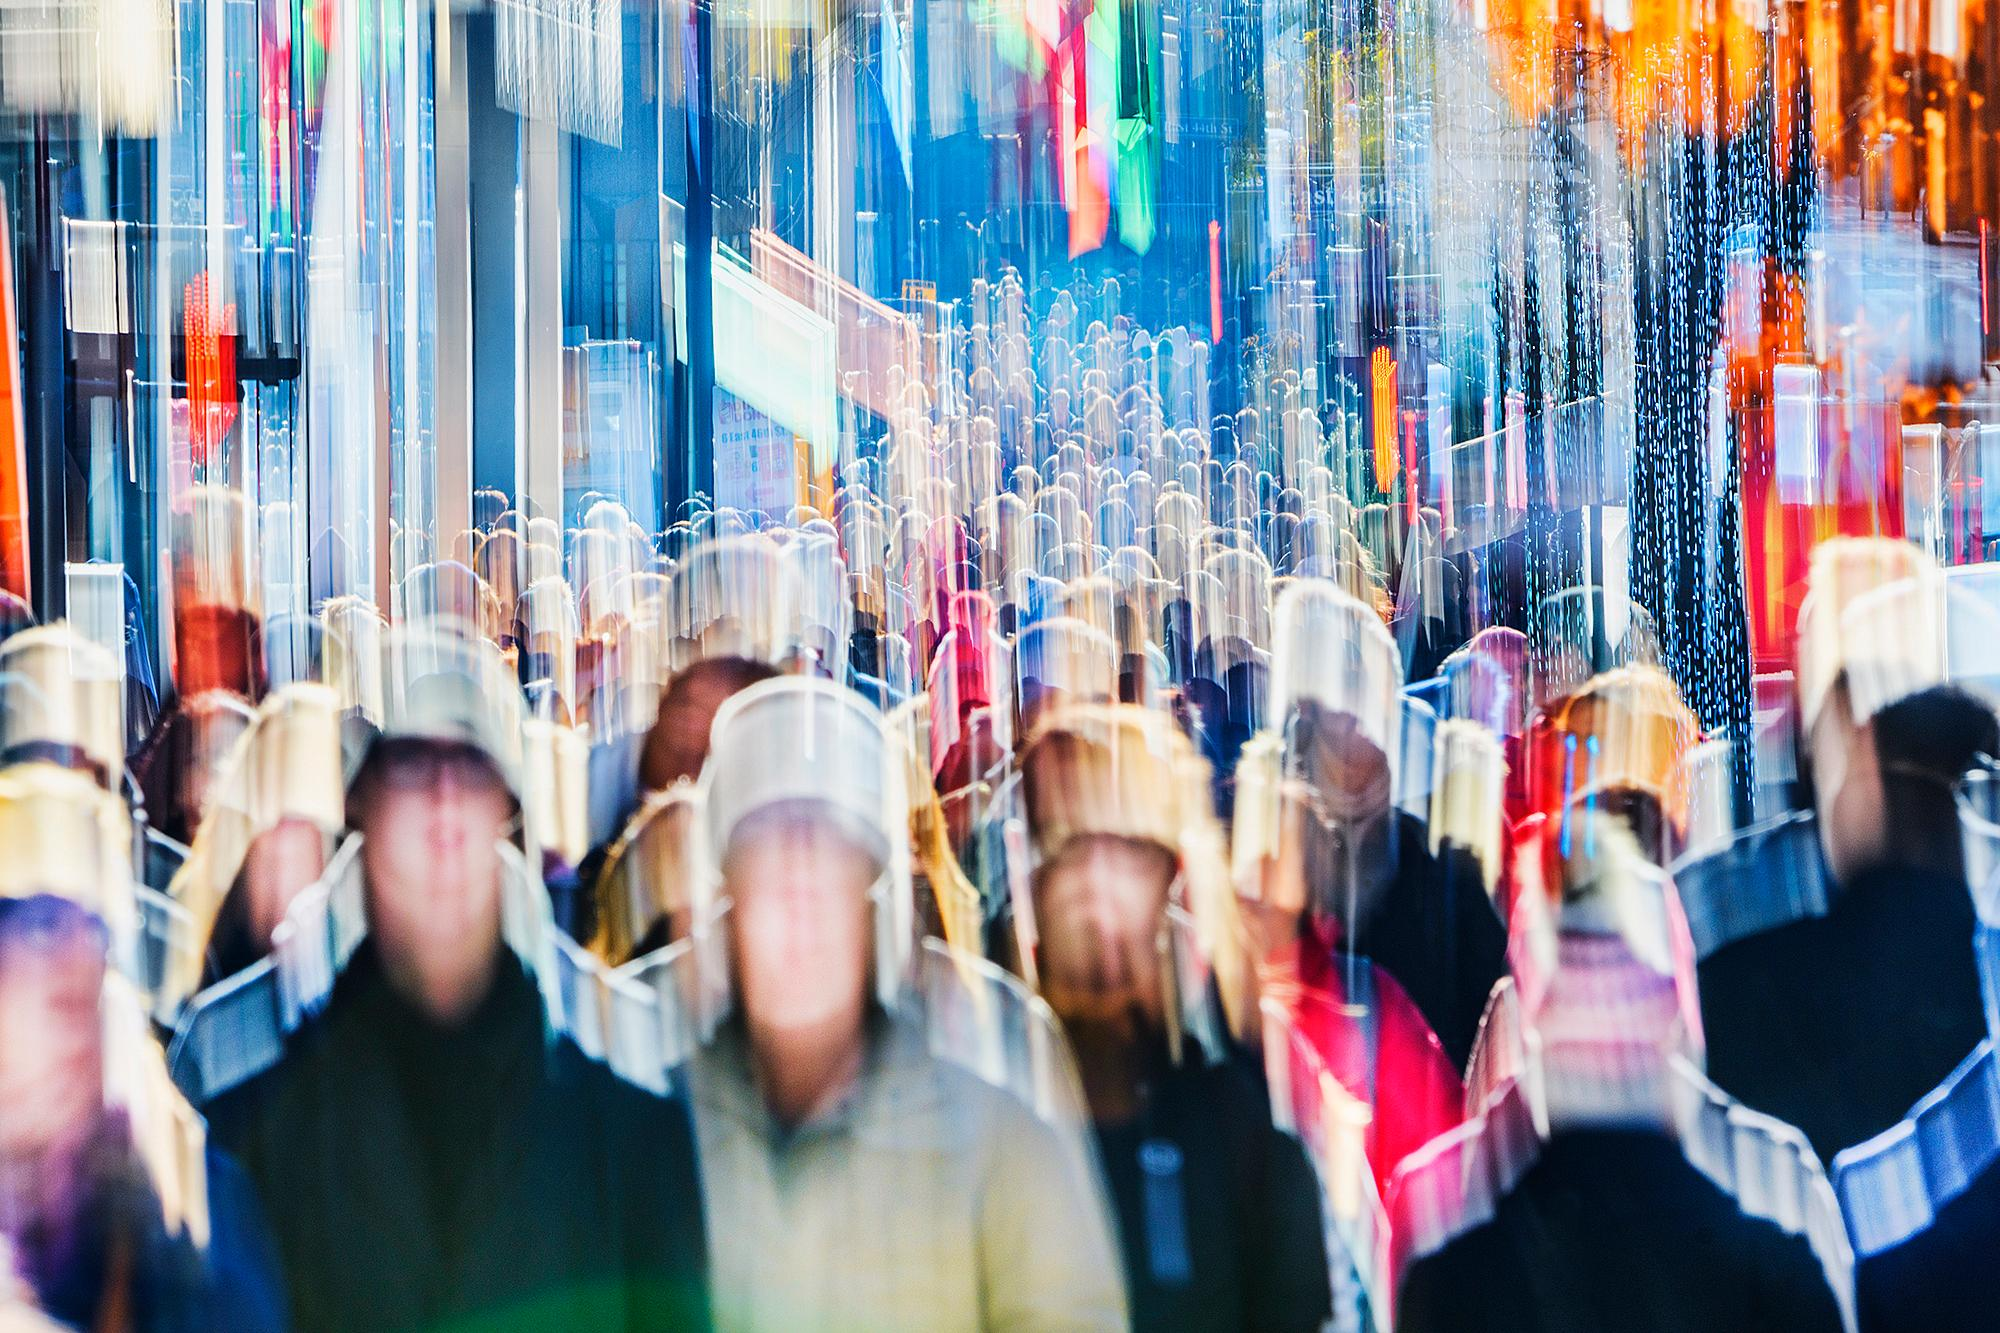 Abstract View Of Crowds On Fifth Avenue, New York City